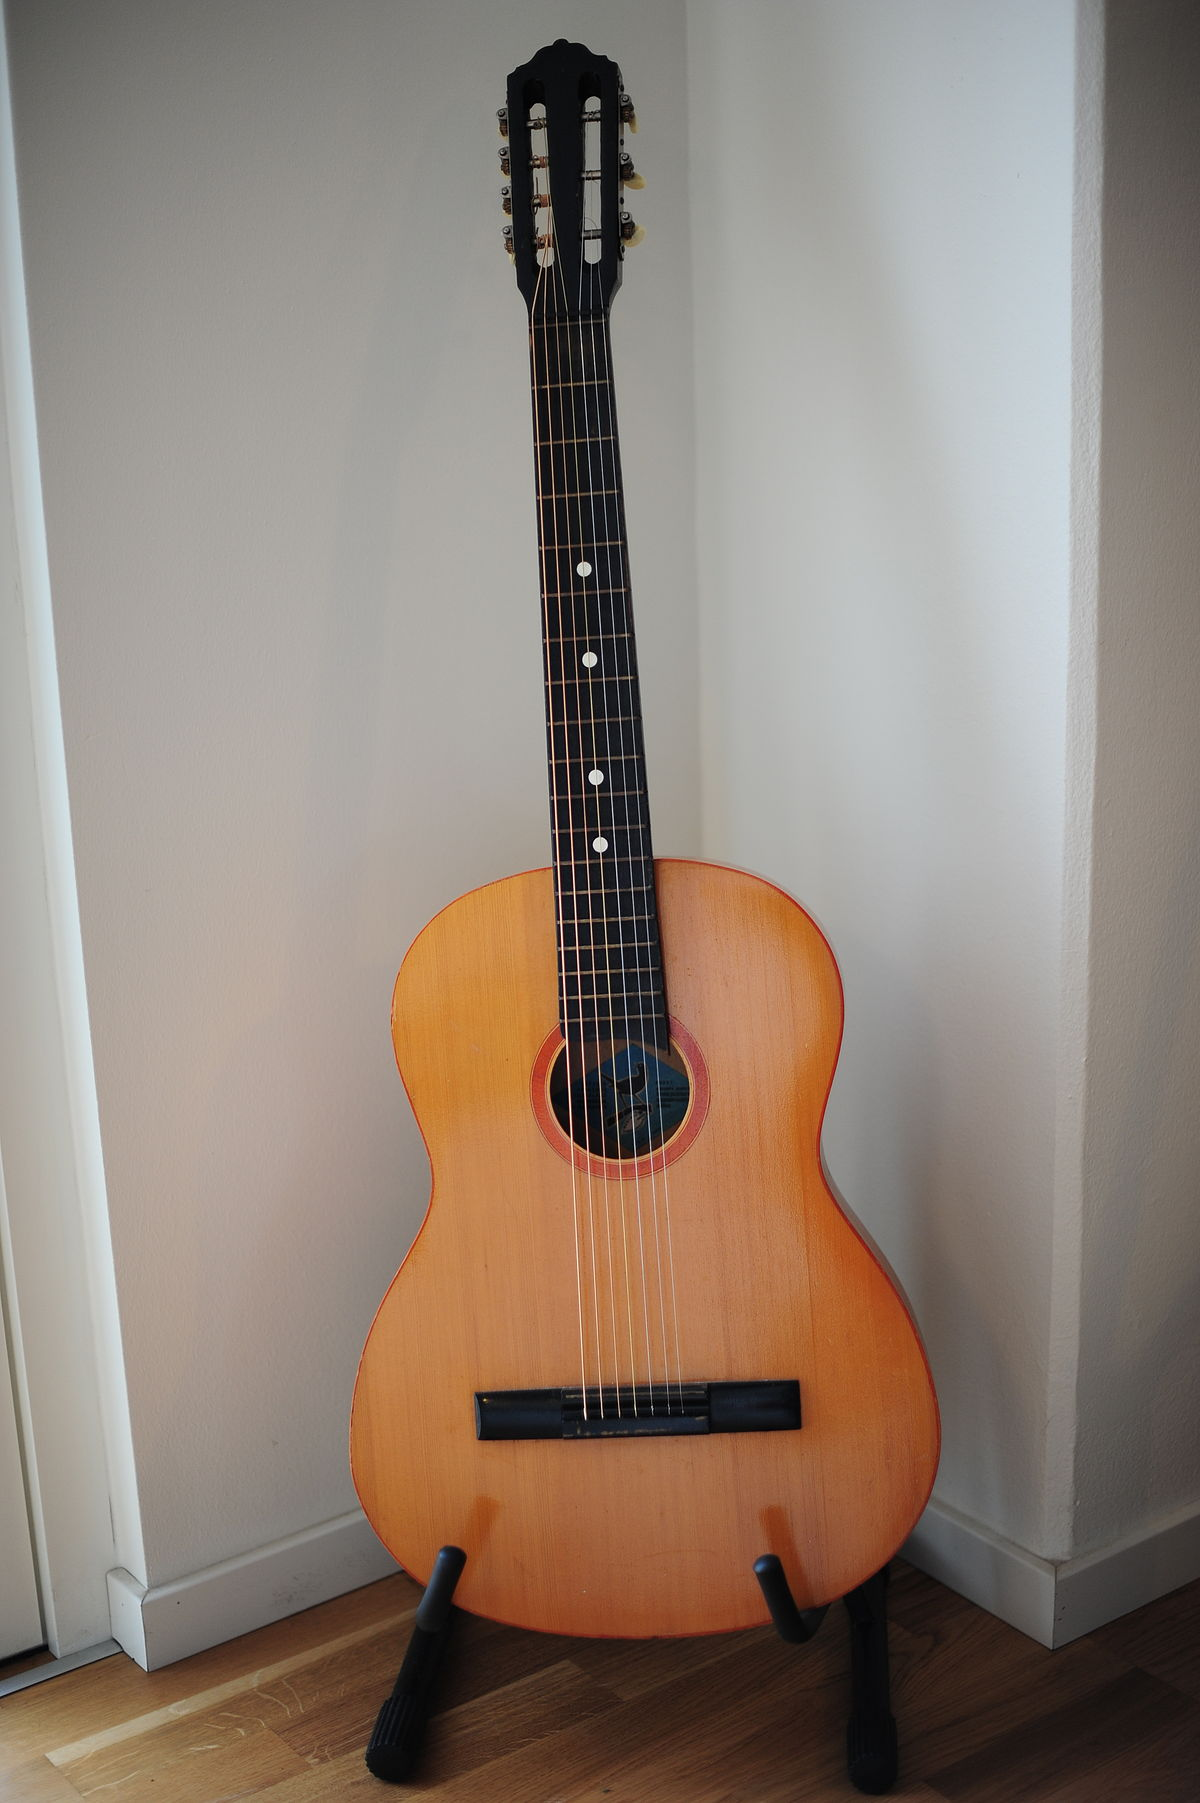 Seven-string guitar - Wikipedia